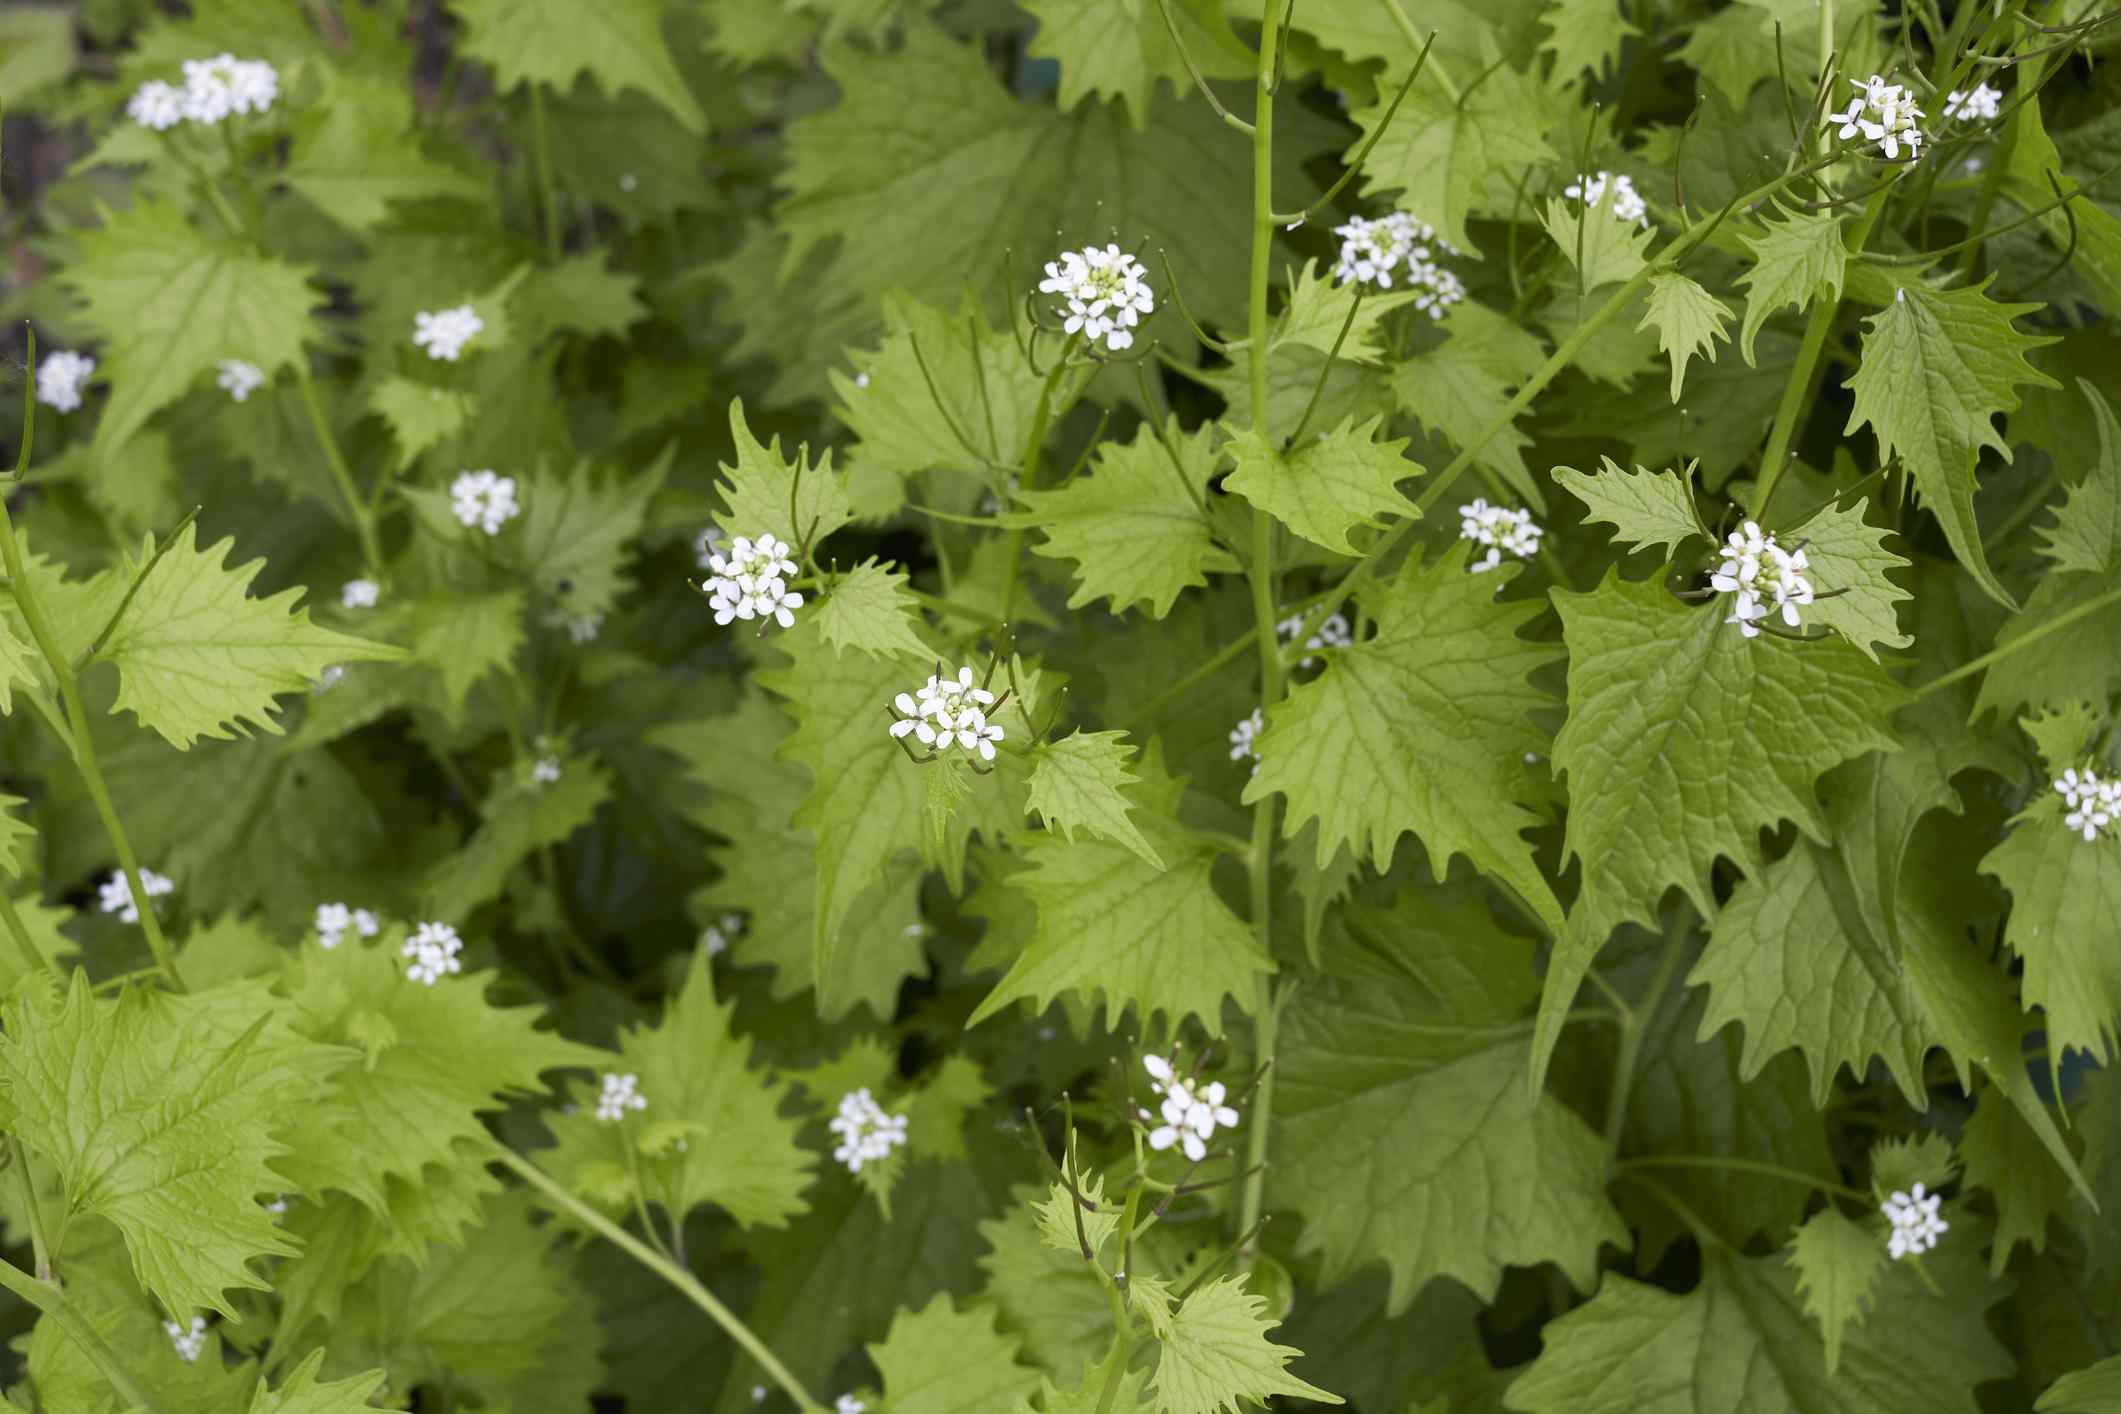 Cluster of garlic mustard with white flowers in bloom